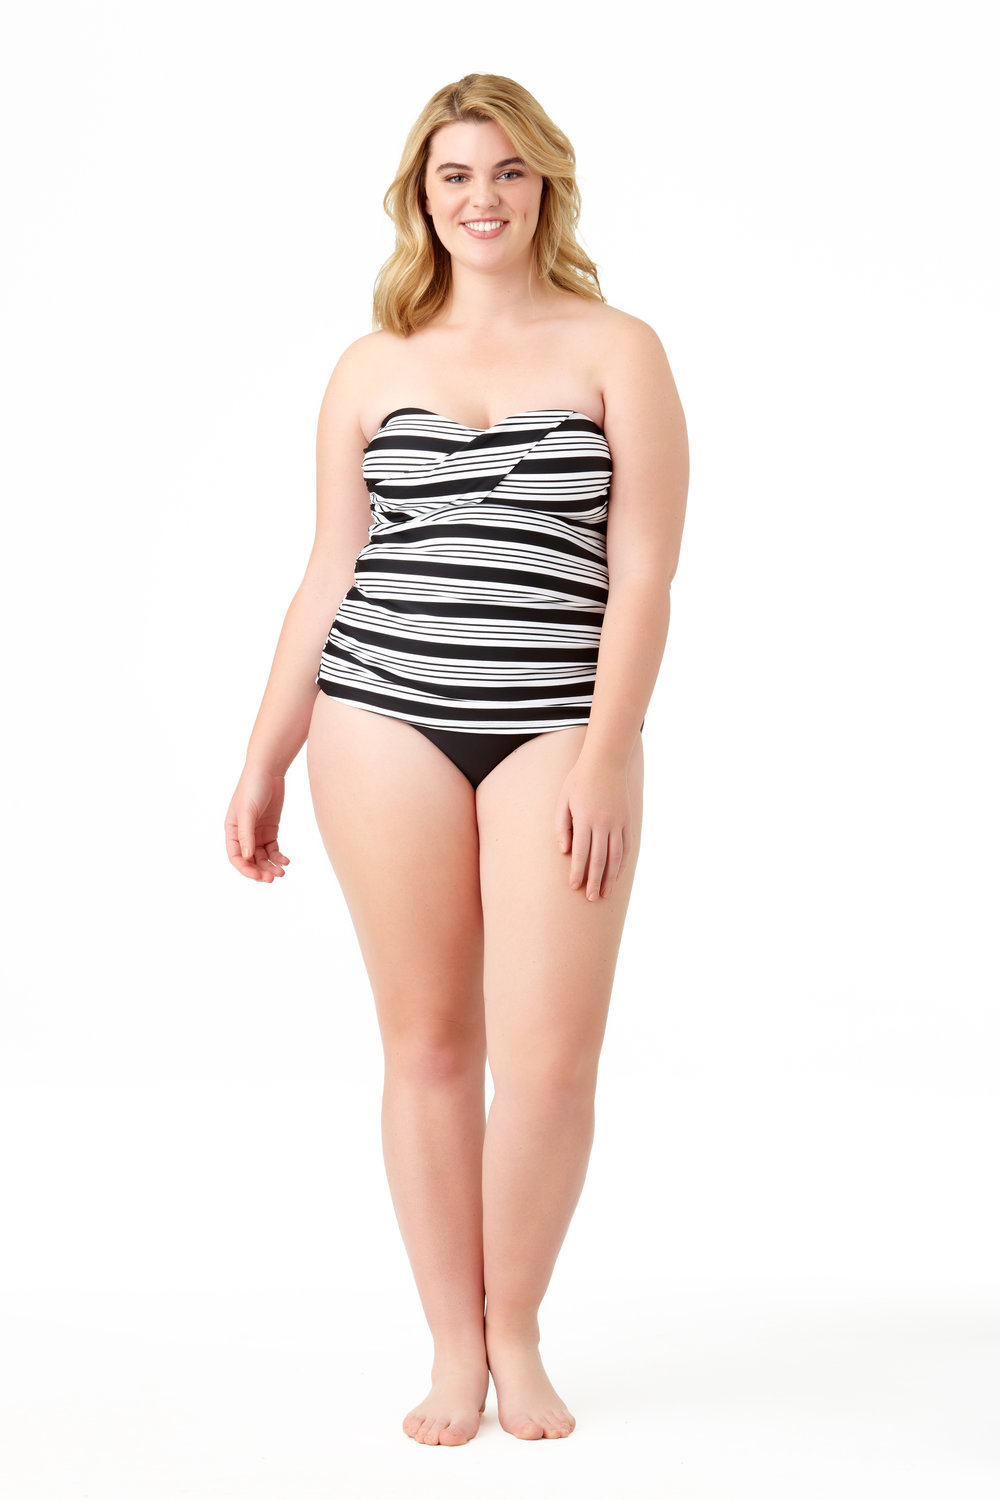 STYLE # CTP27401T / CTP07500B - Melbourne Stripe Twist Bandini BUY NOW FROM WALMARTSolid High Waist BottomBUY NOW FROM WALMART